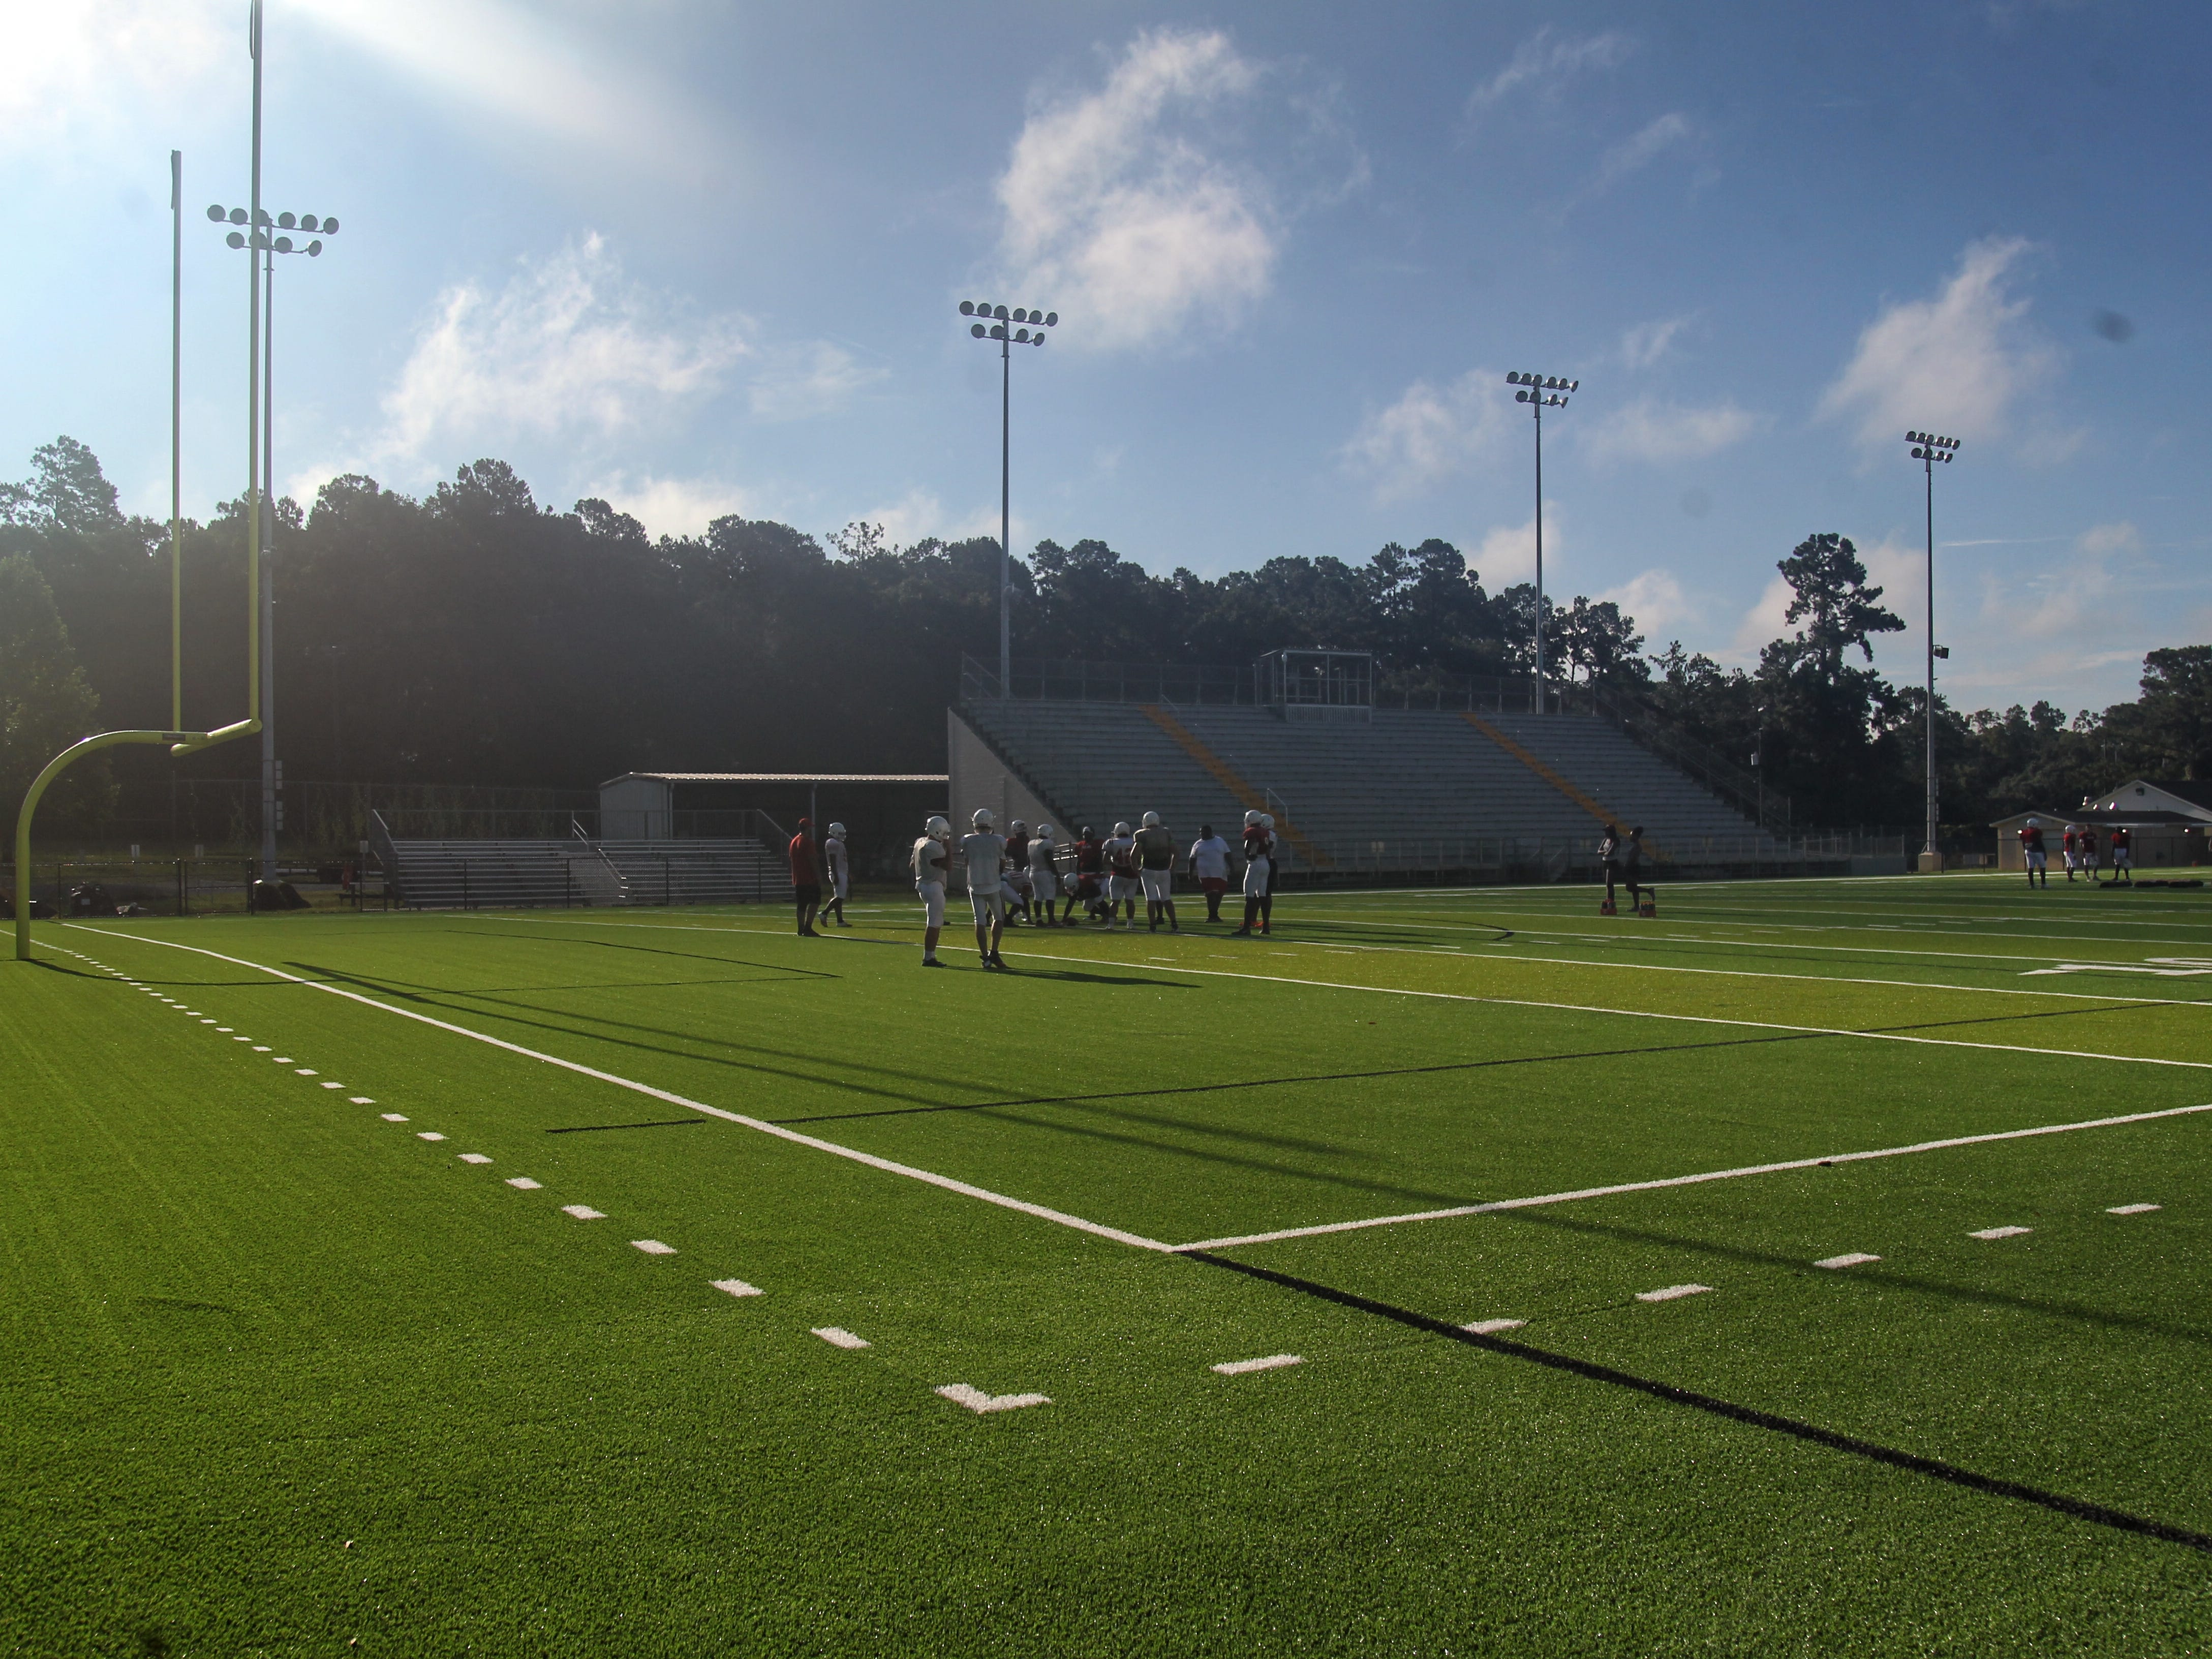 Leon's football team practices at Gene Cox Stadium on its new turf field on Tuesday, Aug. 7, 2018. Formerly Capital Stadium, Cox Stadium was dedicated to legendary Leon coach Gene Cox in 1997.